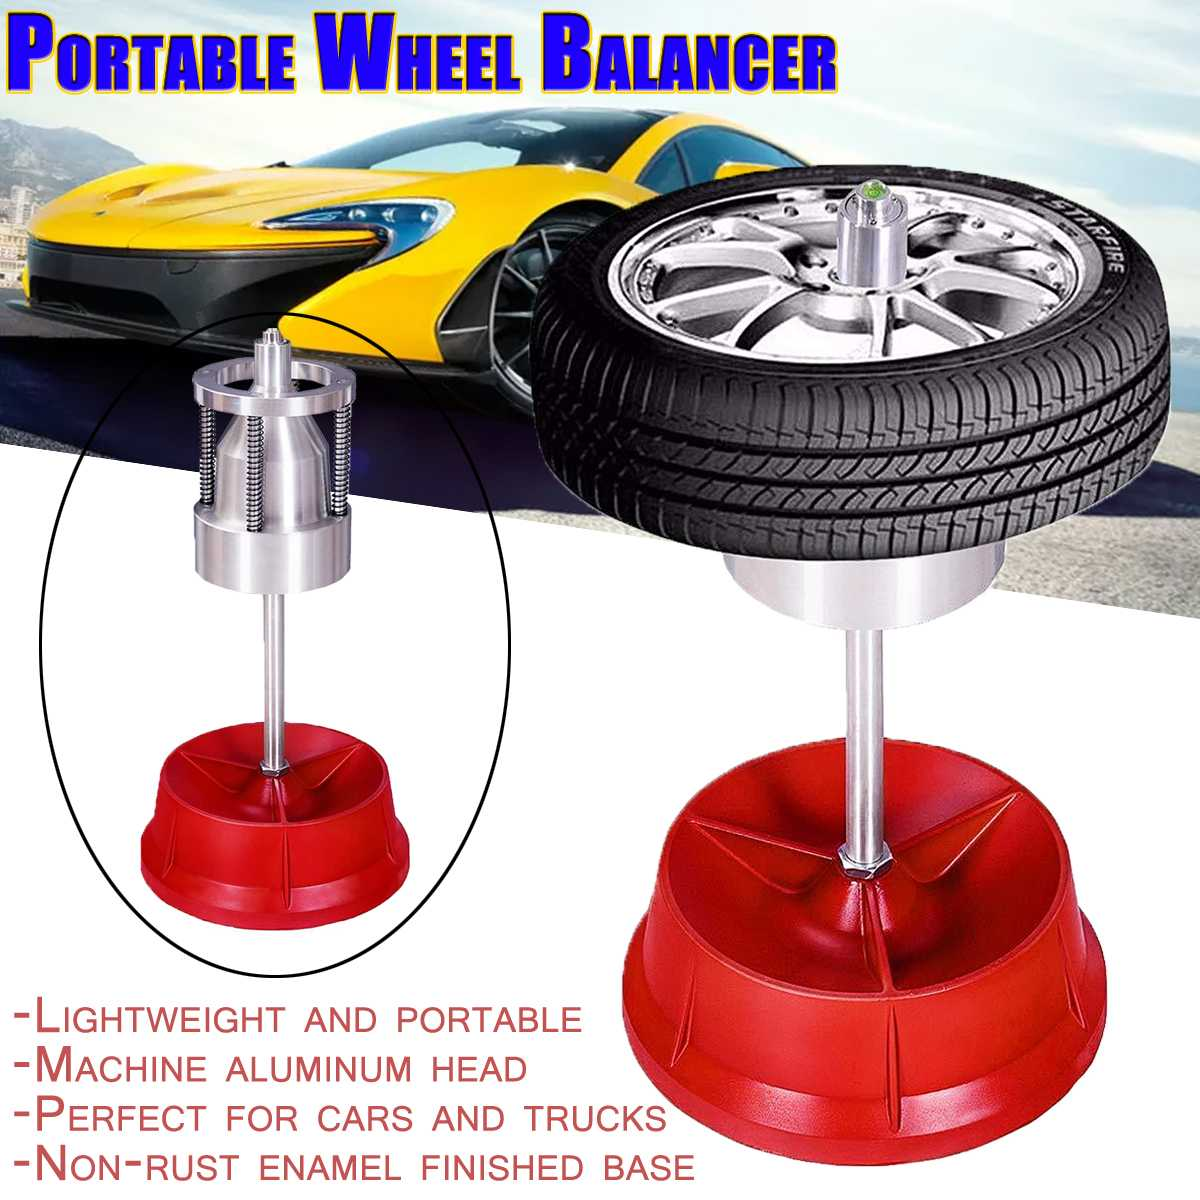 Car Truck Portable Hubs Wheel Tire Balancer Bubble Level Heavy Duty Rim Car Tire Wheel Balancer Auto Tyre Balancing Machine